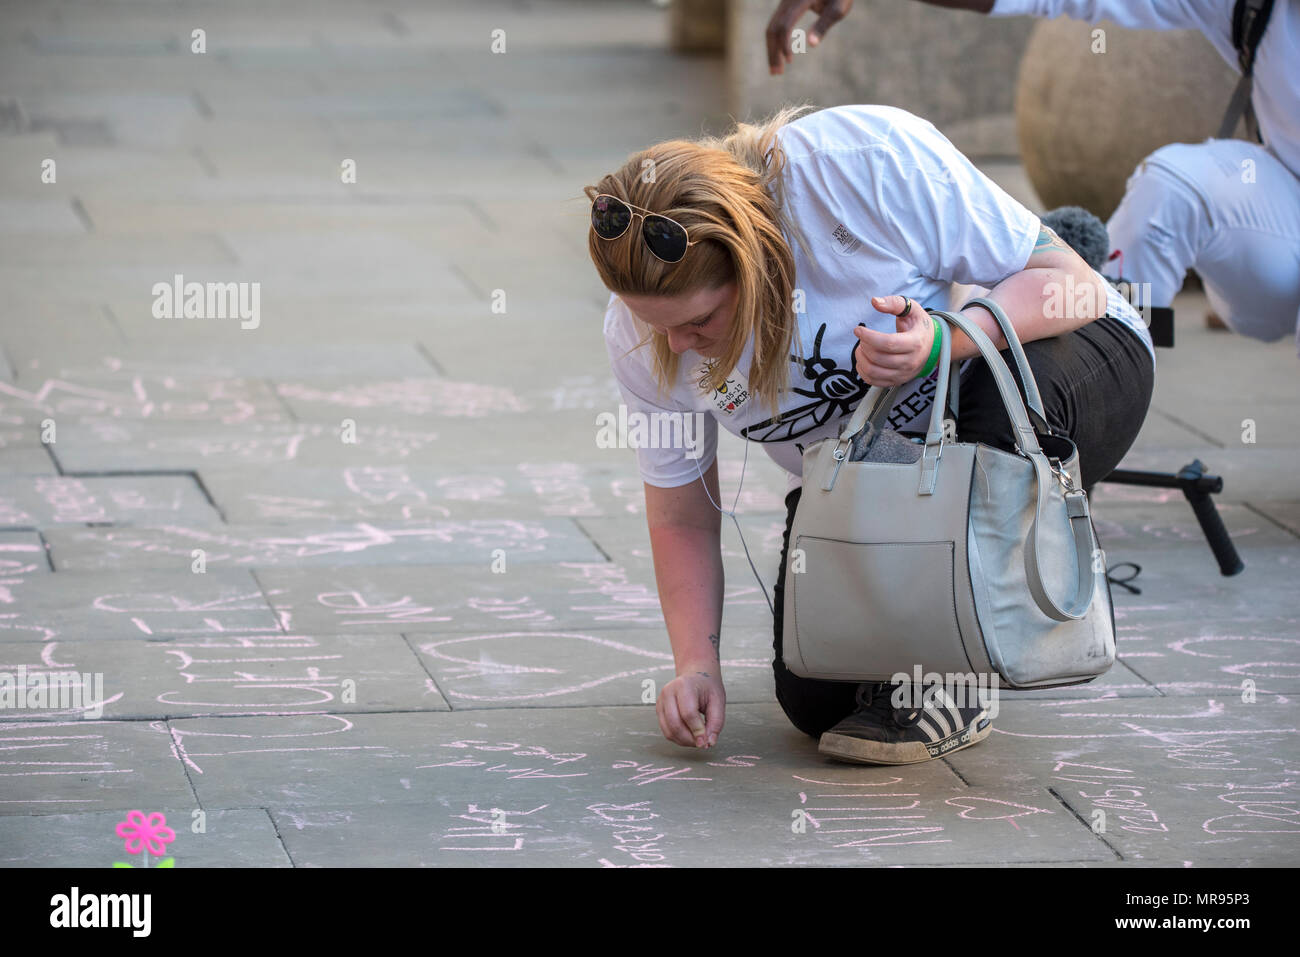 A woman writes messages in chalk on the pavement in St Ann's Square